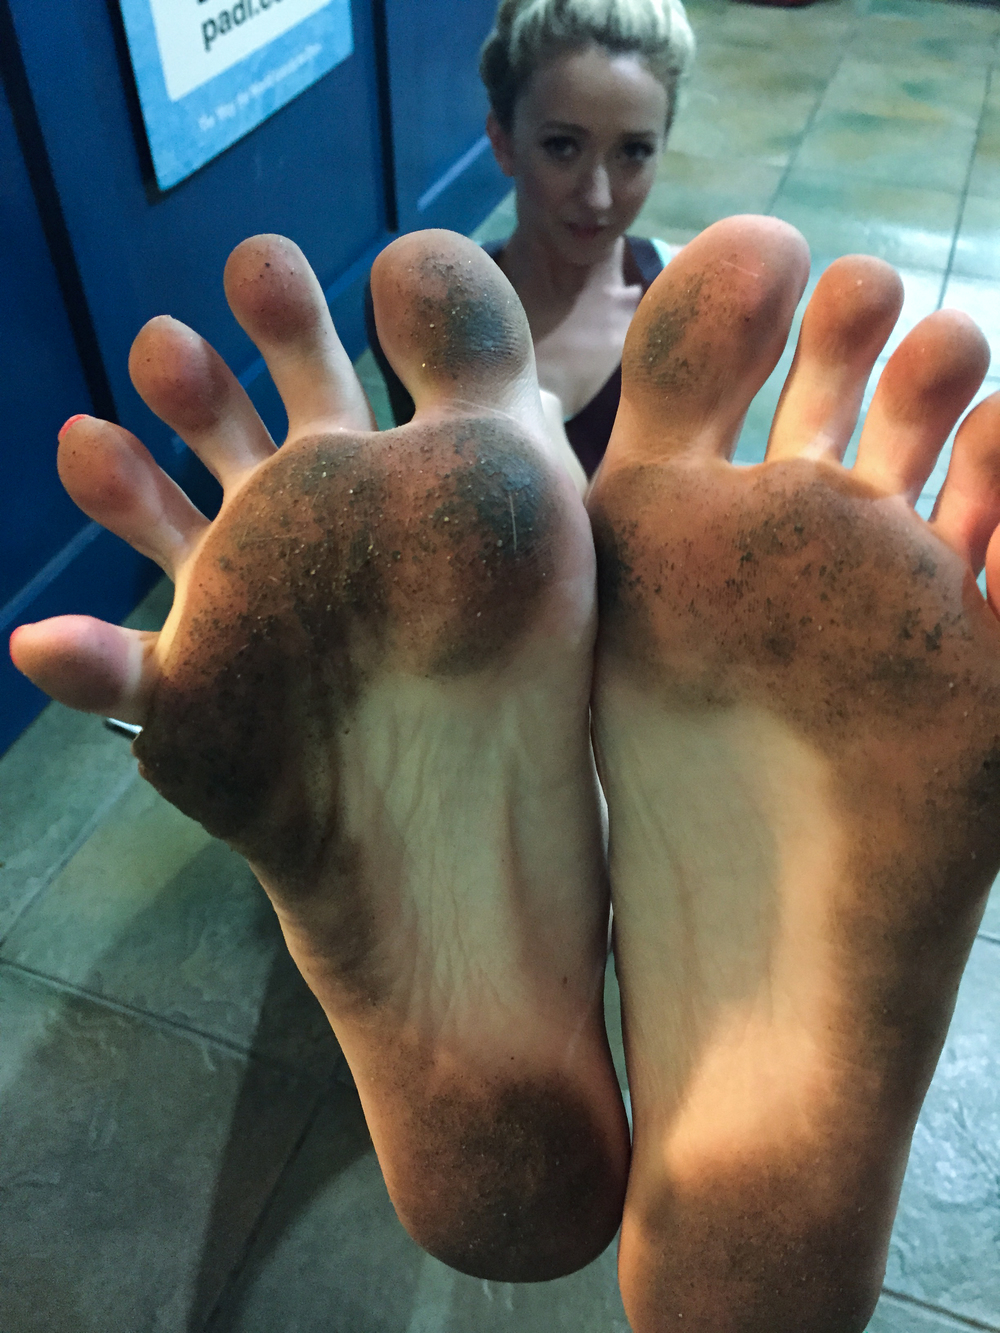 Dirty feet, no problem.